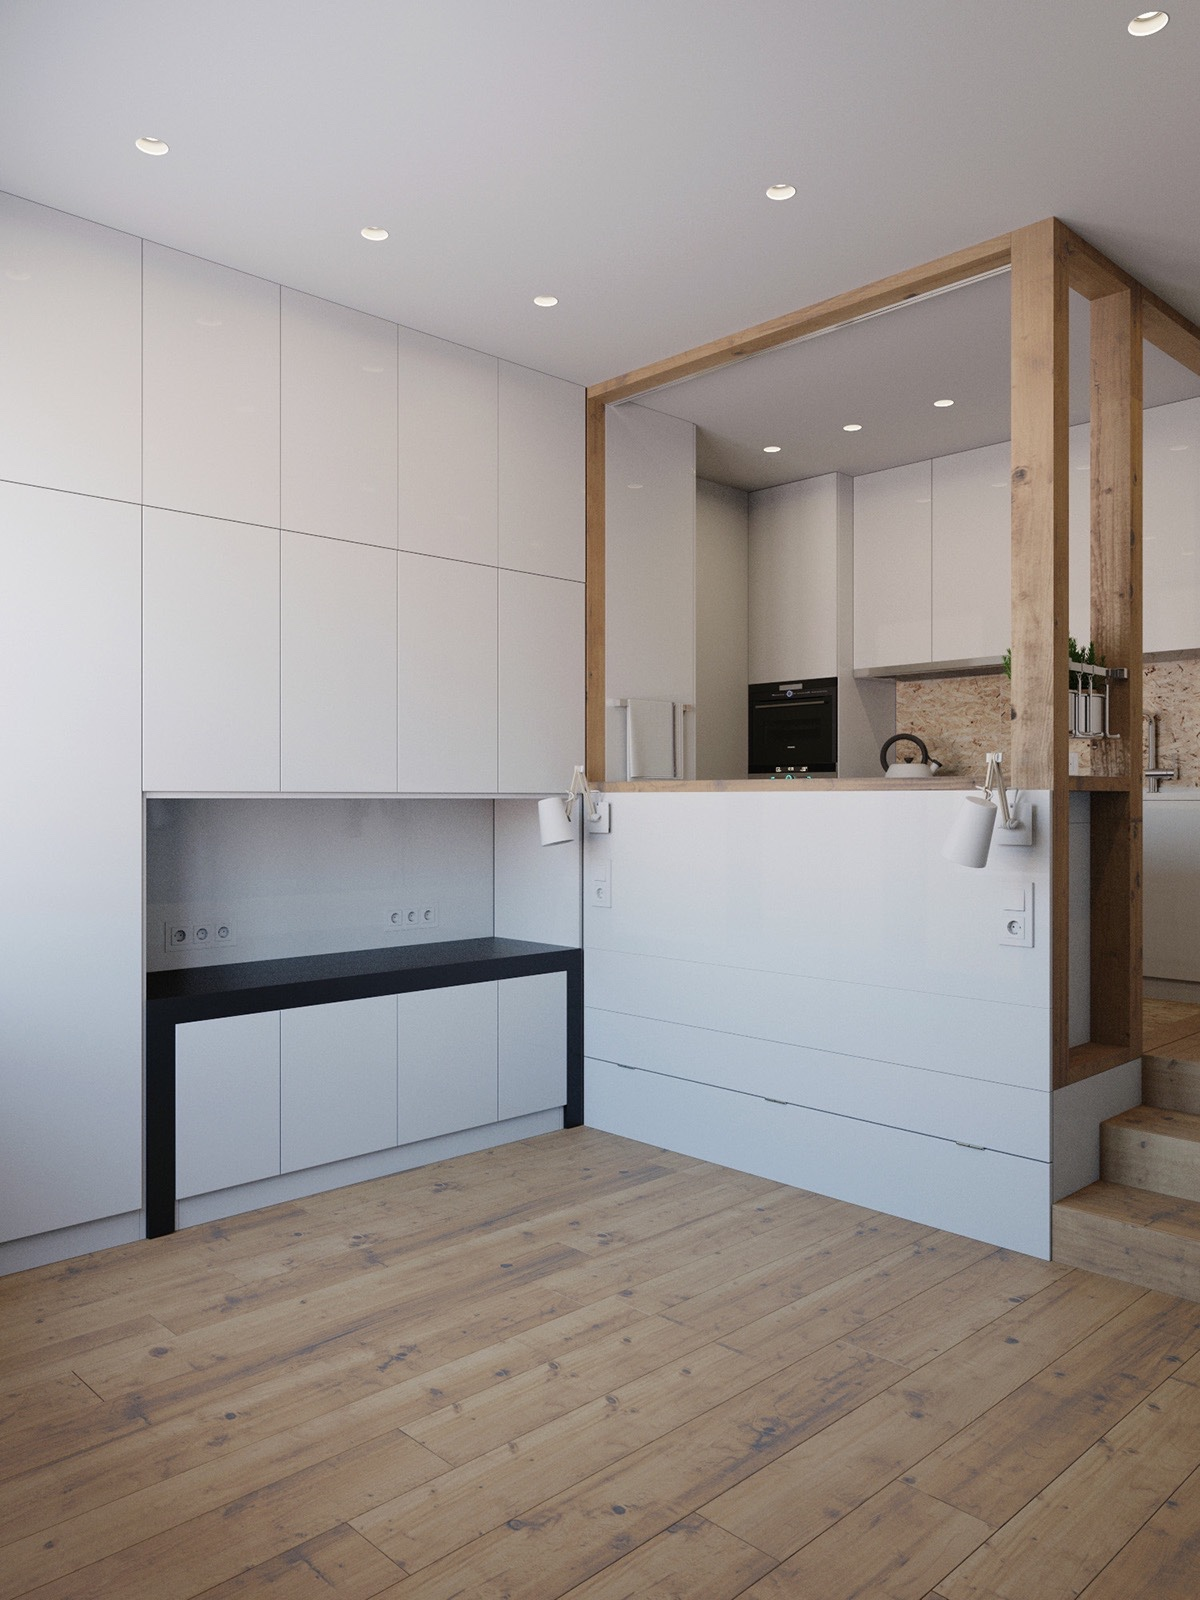 4 Small Apartment Designs Under 50 Square Meters